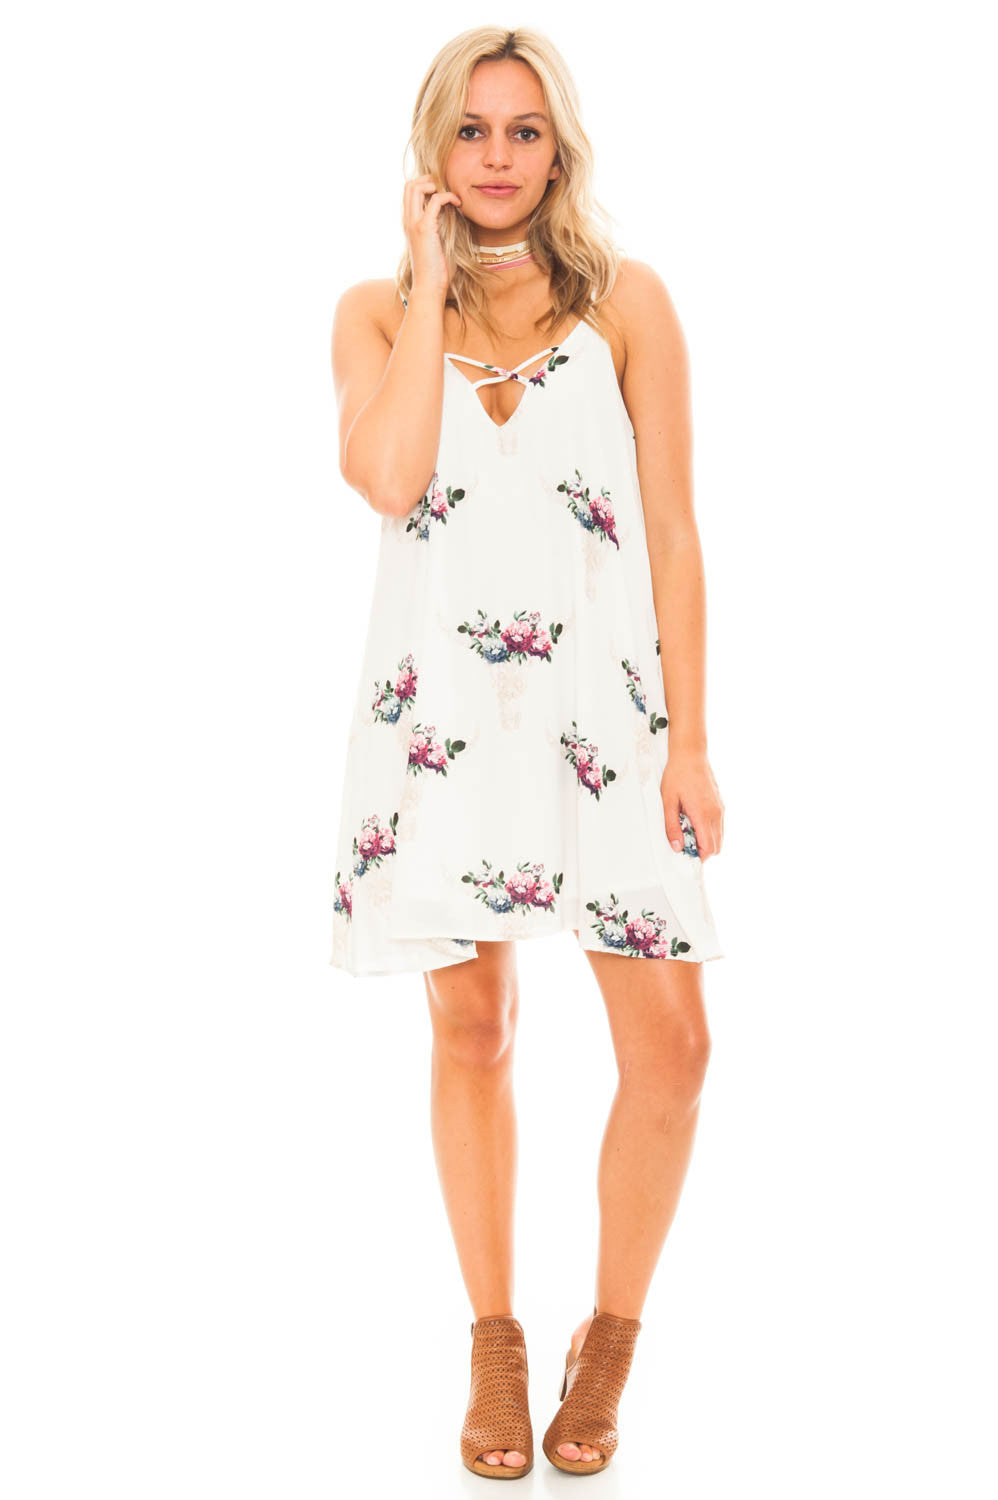 Dress - Bullhead Print Criss Cross Front Dress With Pockets